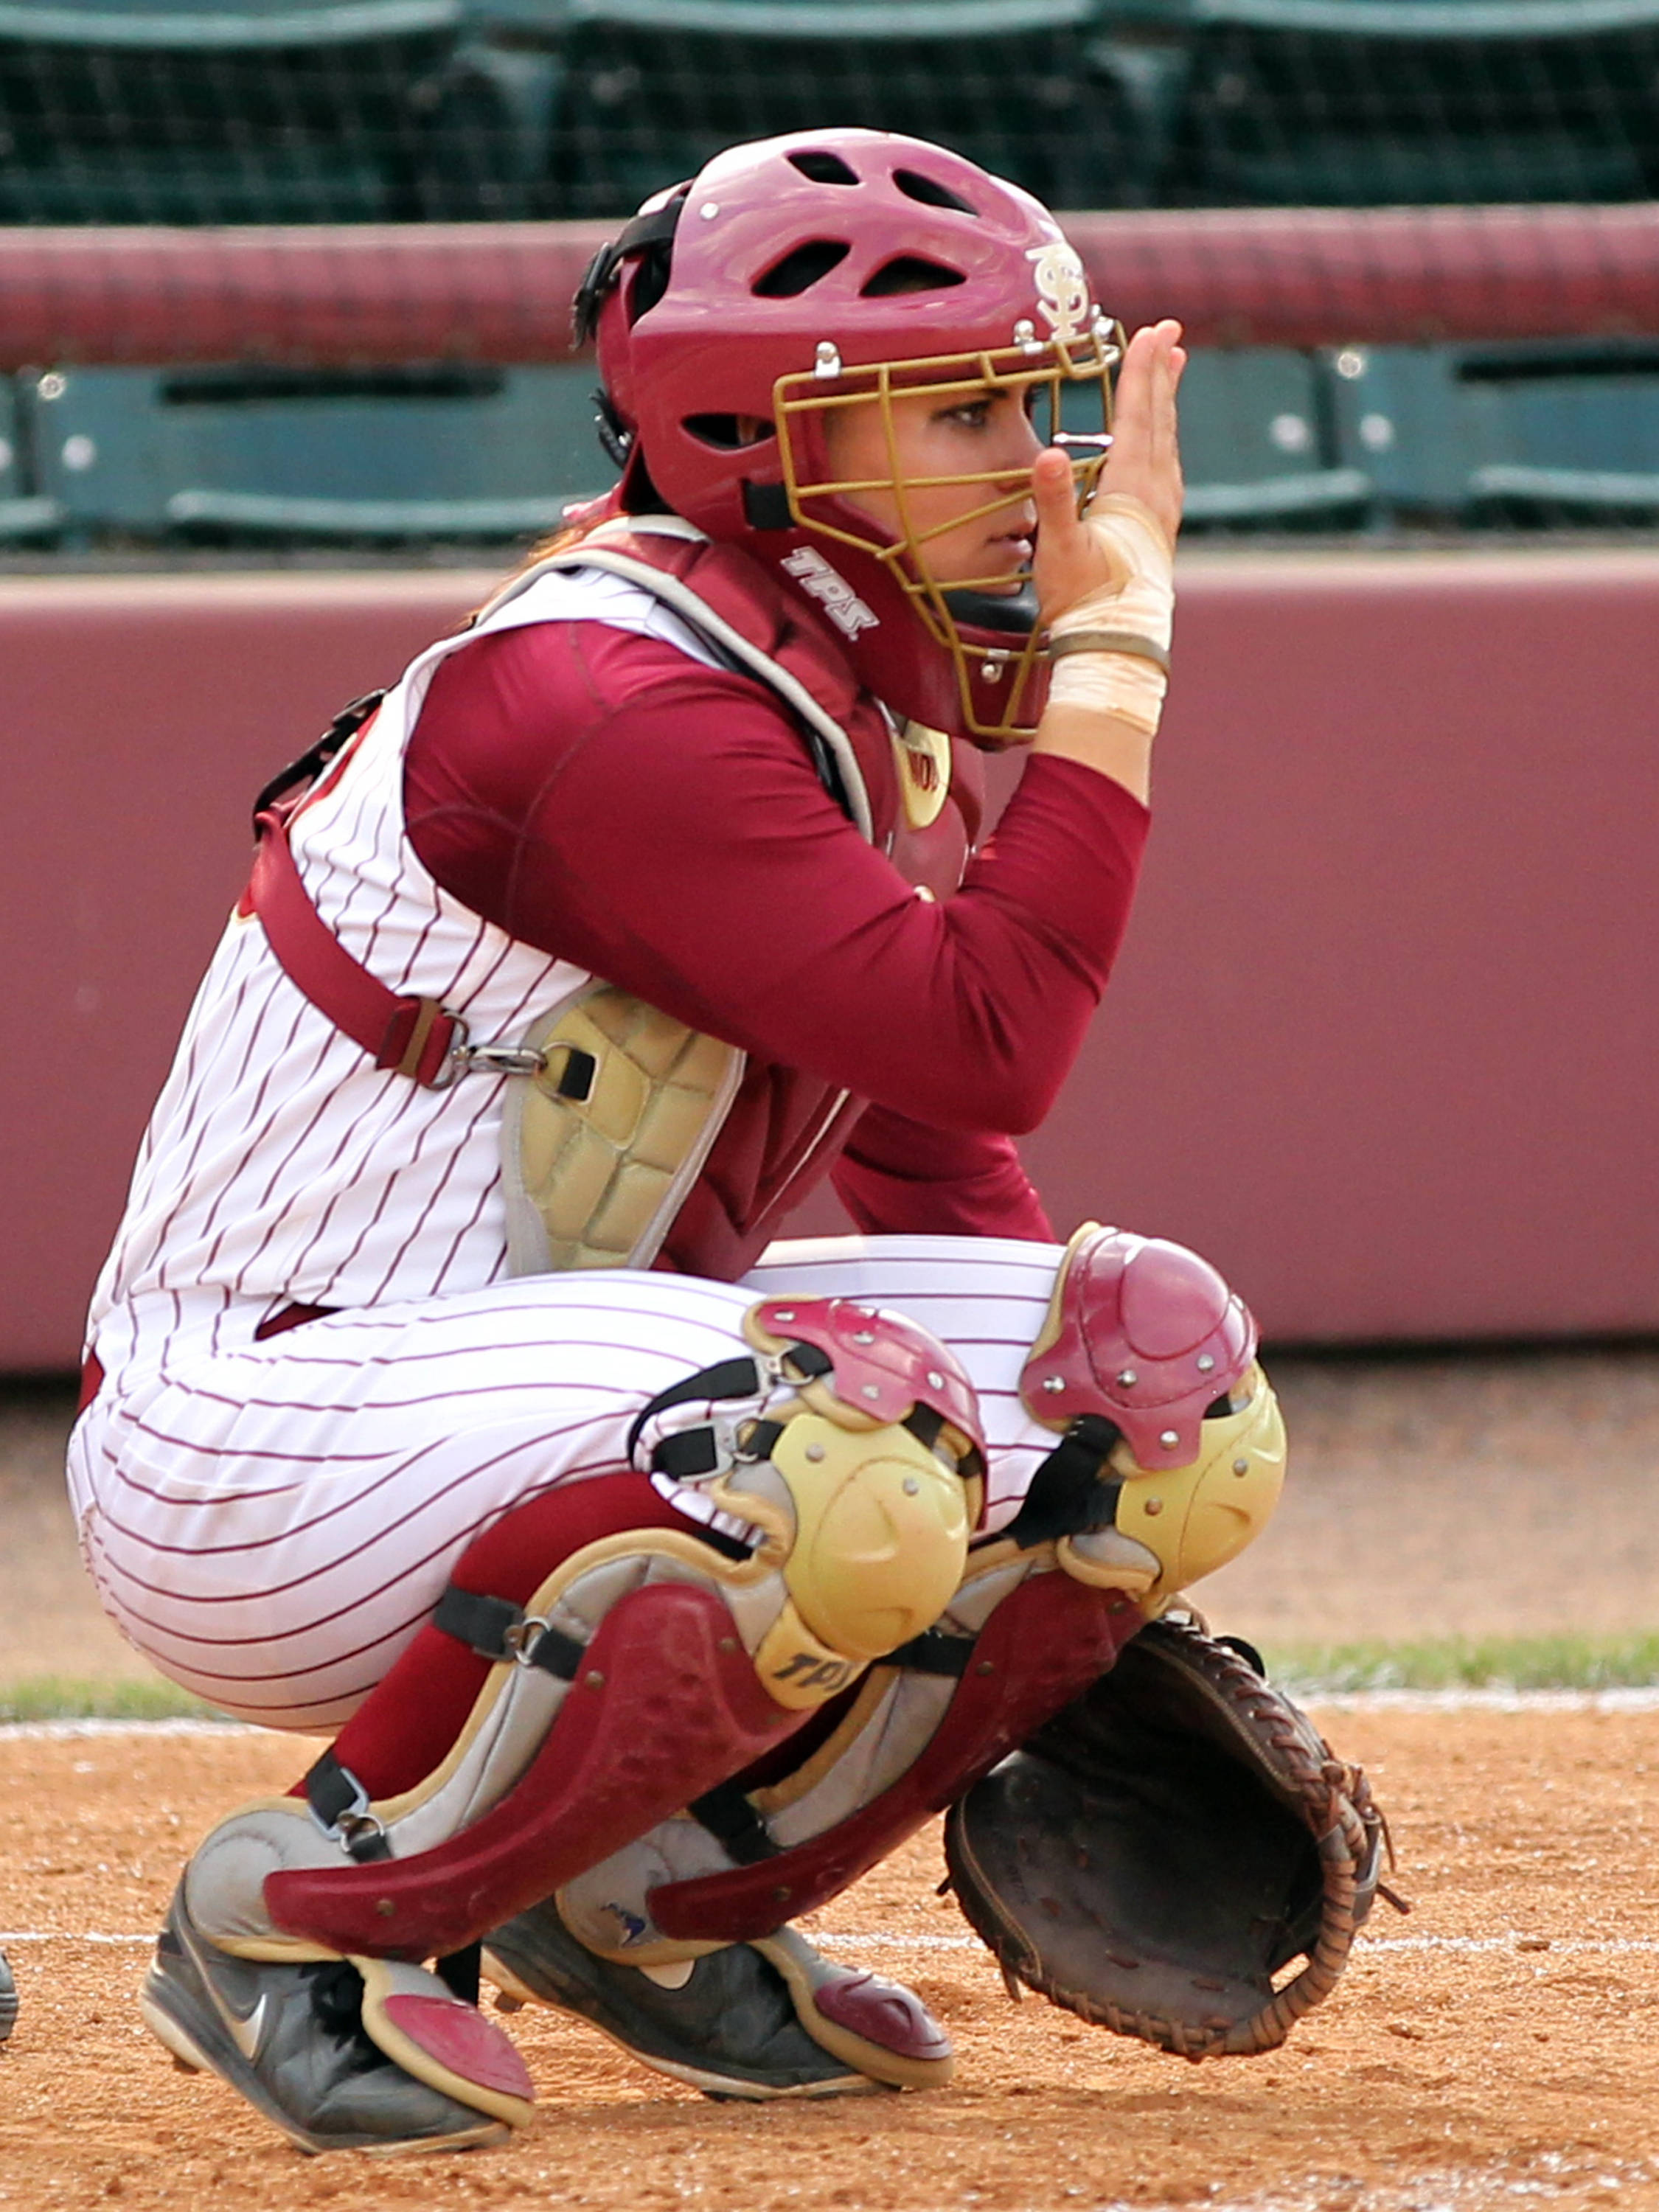 Celeste Gomez giving a signal to the infield, FSU VS BC, ACC Championship Quarterfinals, Tallahassee, FL,  05/09/13 . (Photo by Steve Musco)